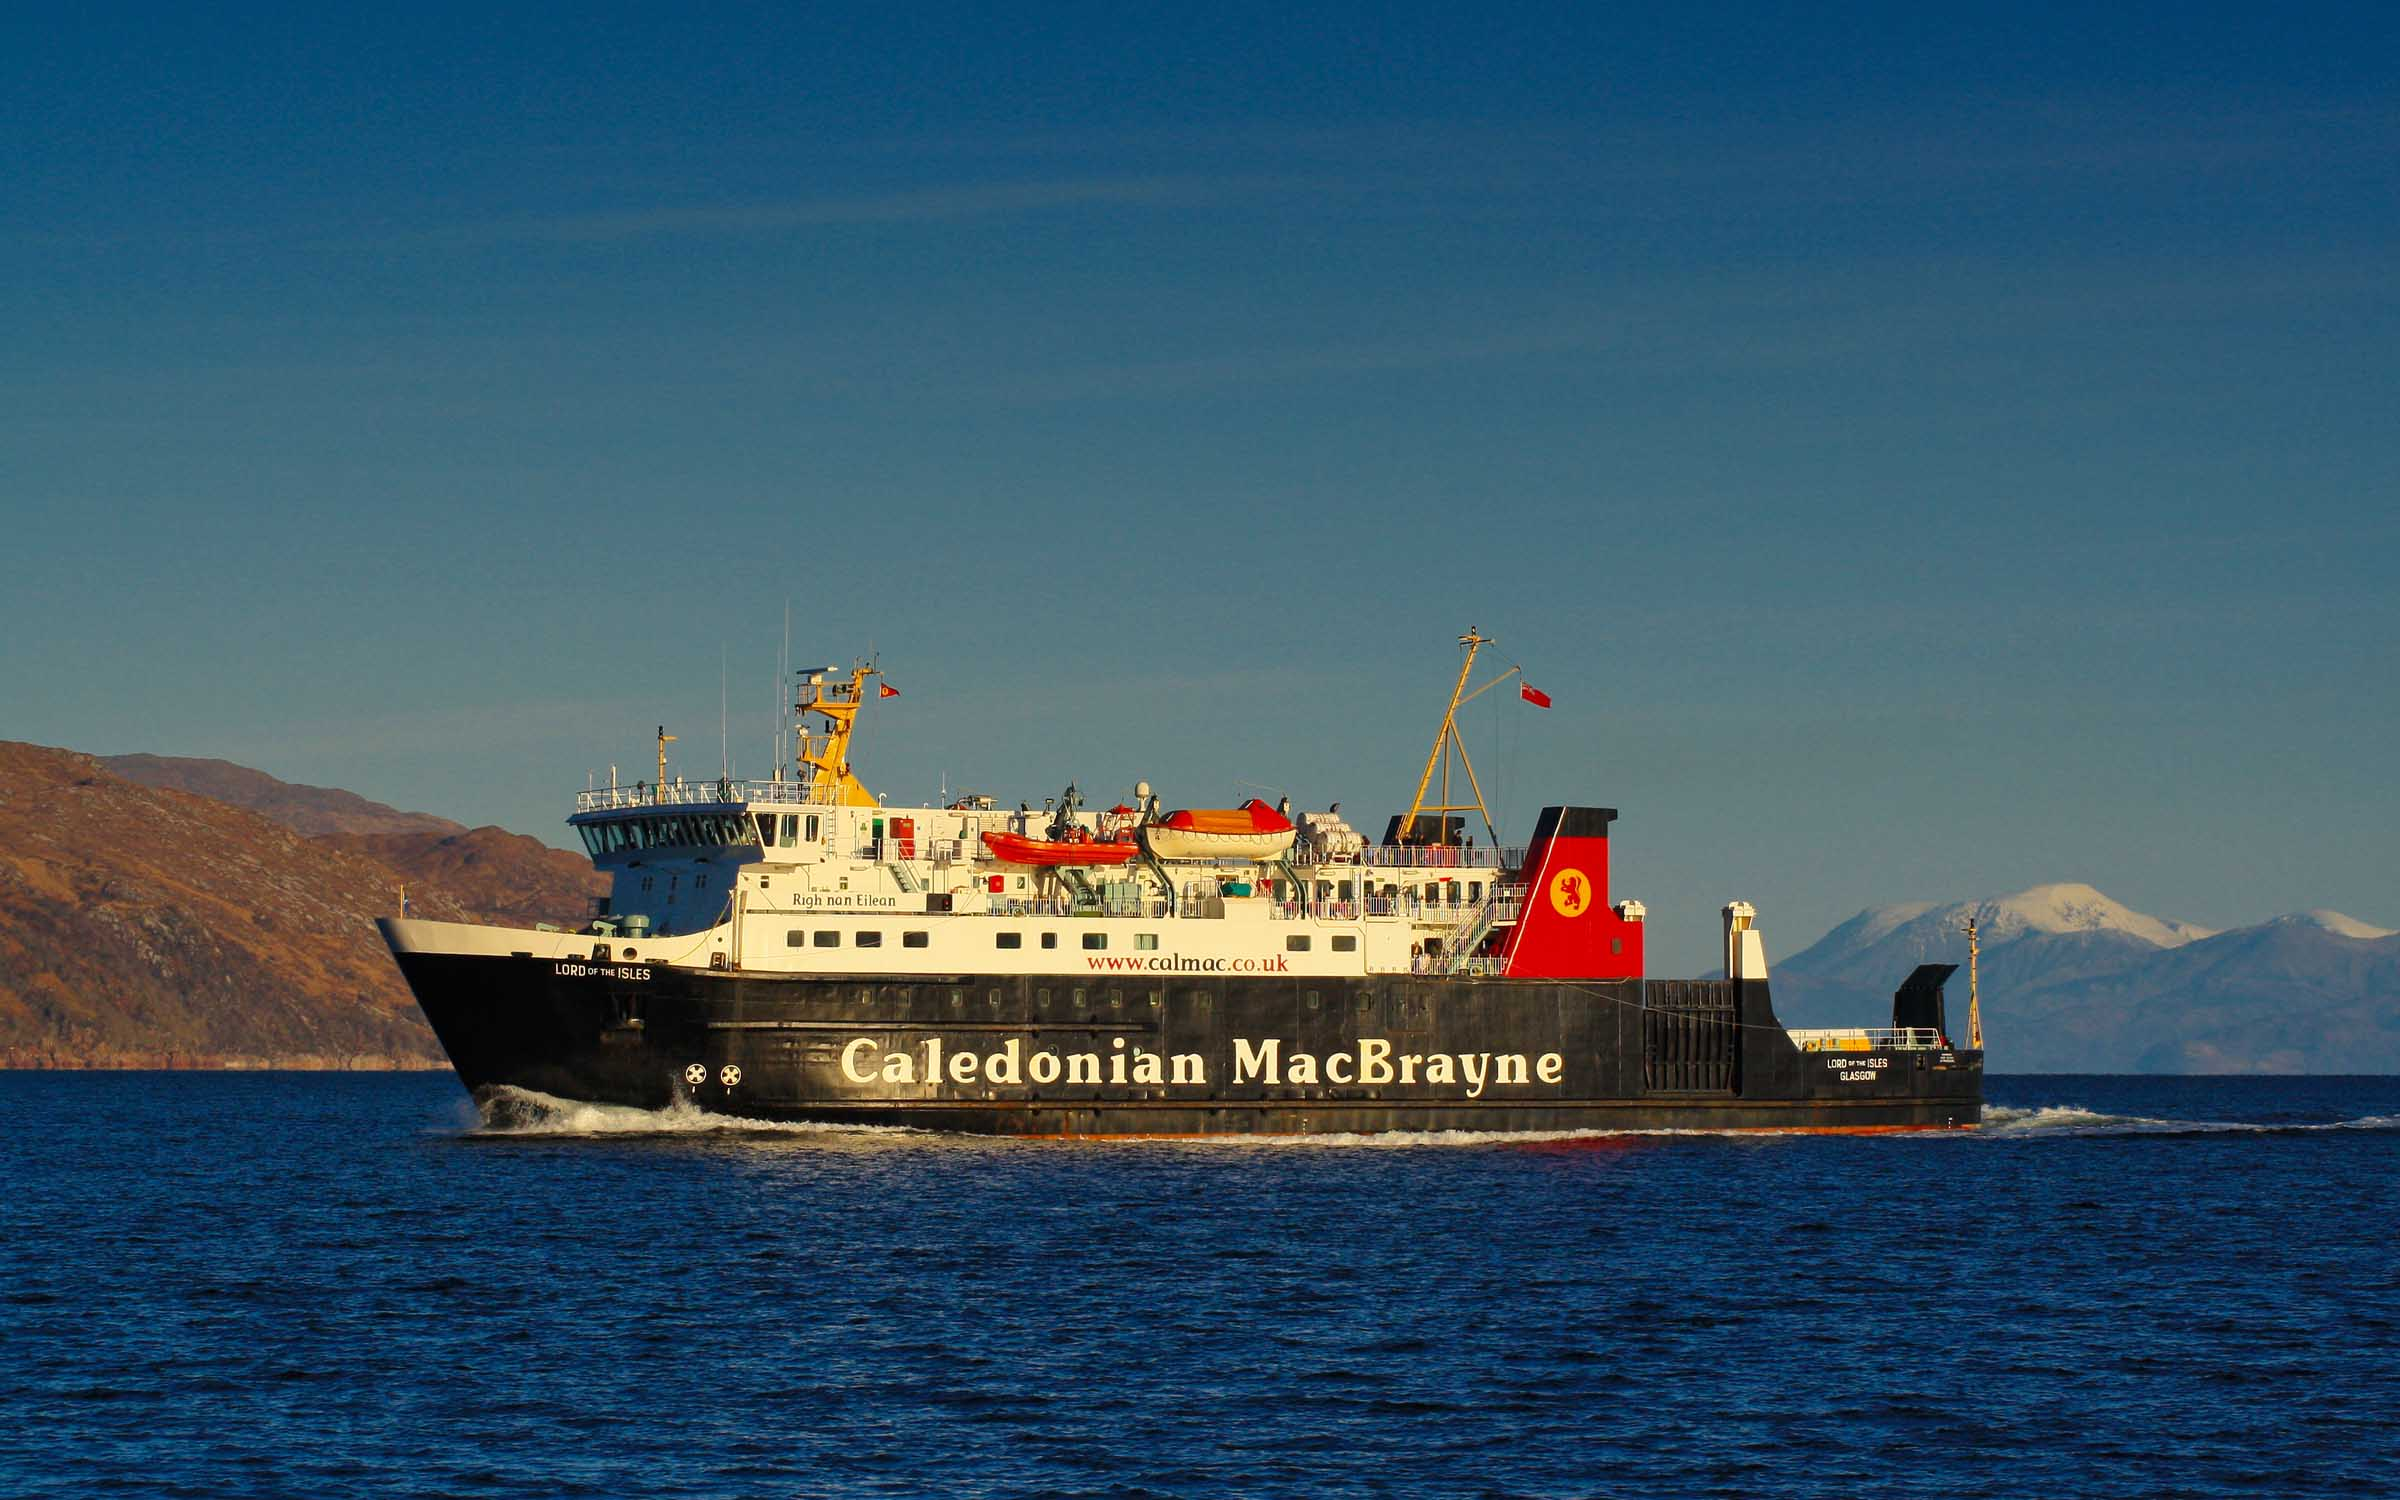 Lord of the Isles approaching Craignure (Ships of CalMac)